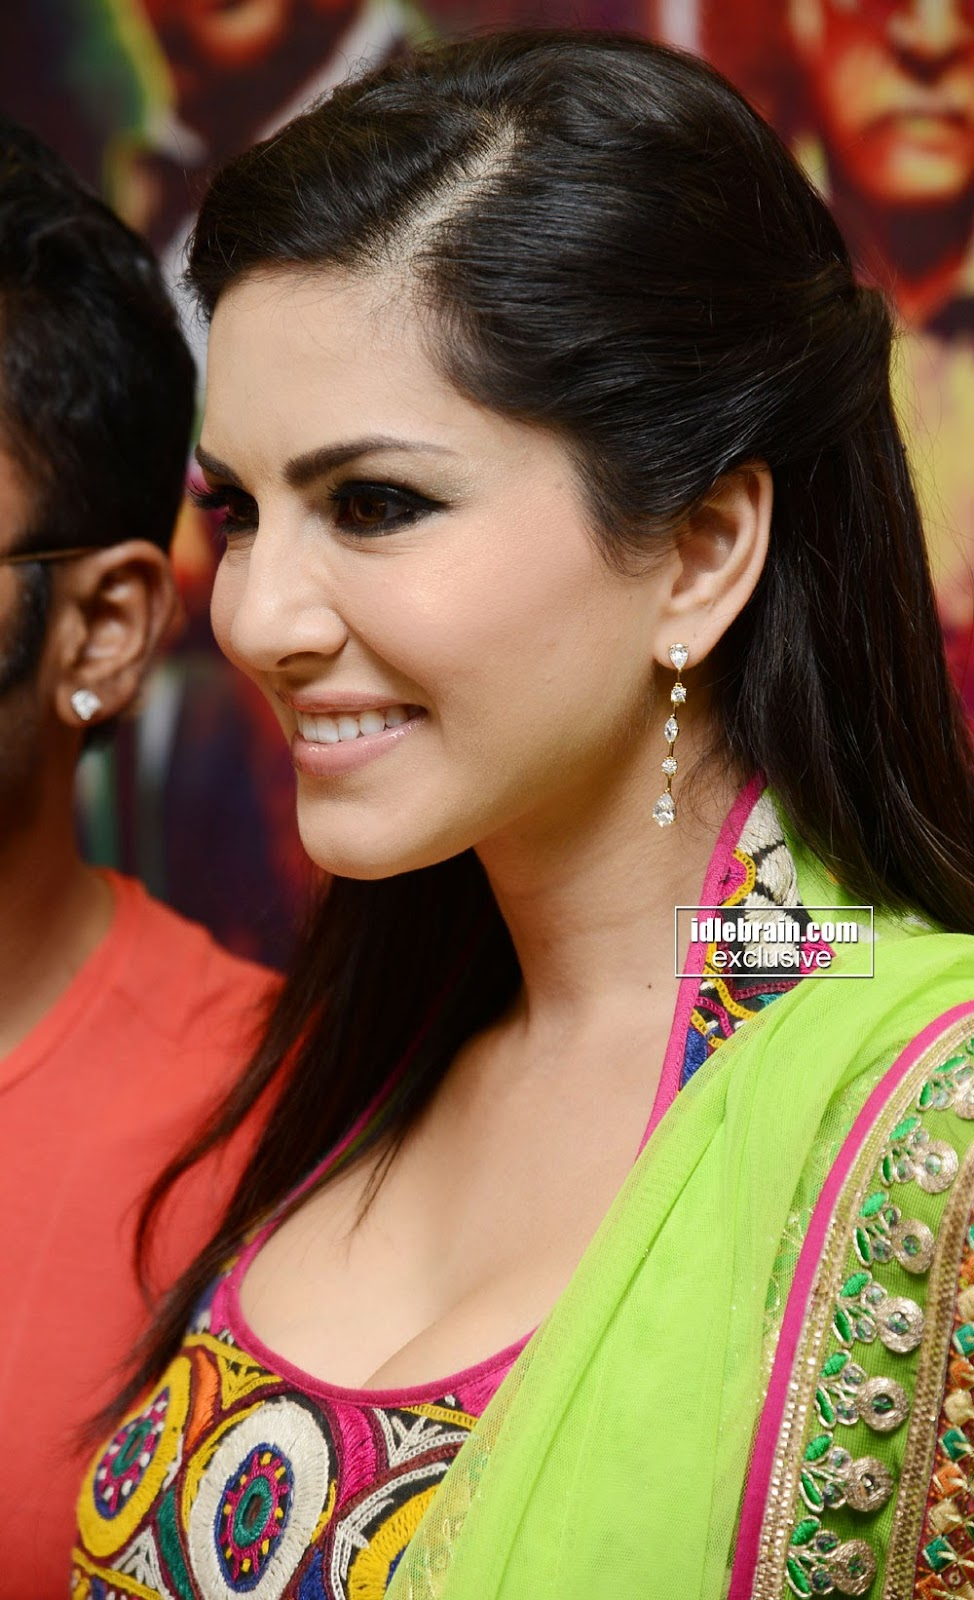 Sunny Leone All Nude Photos